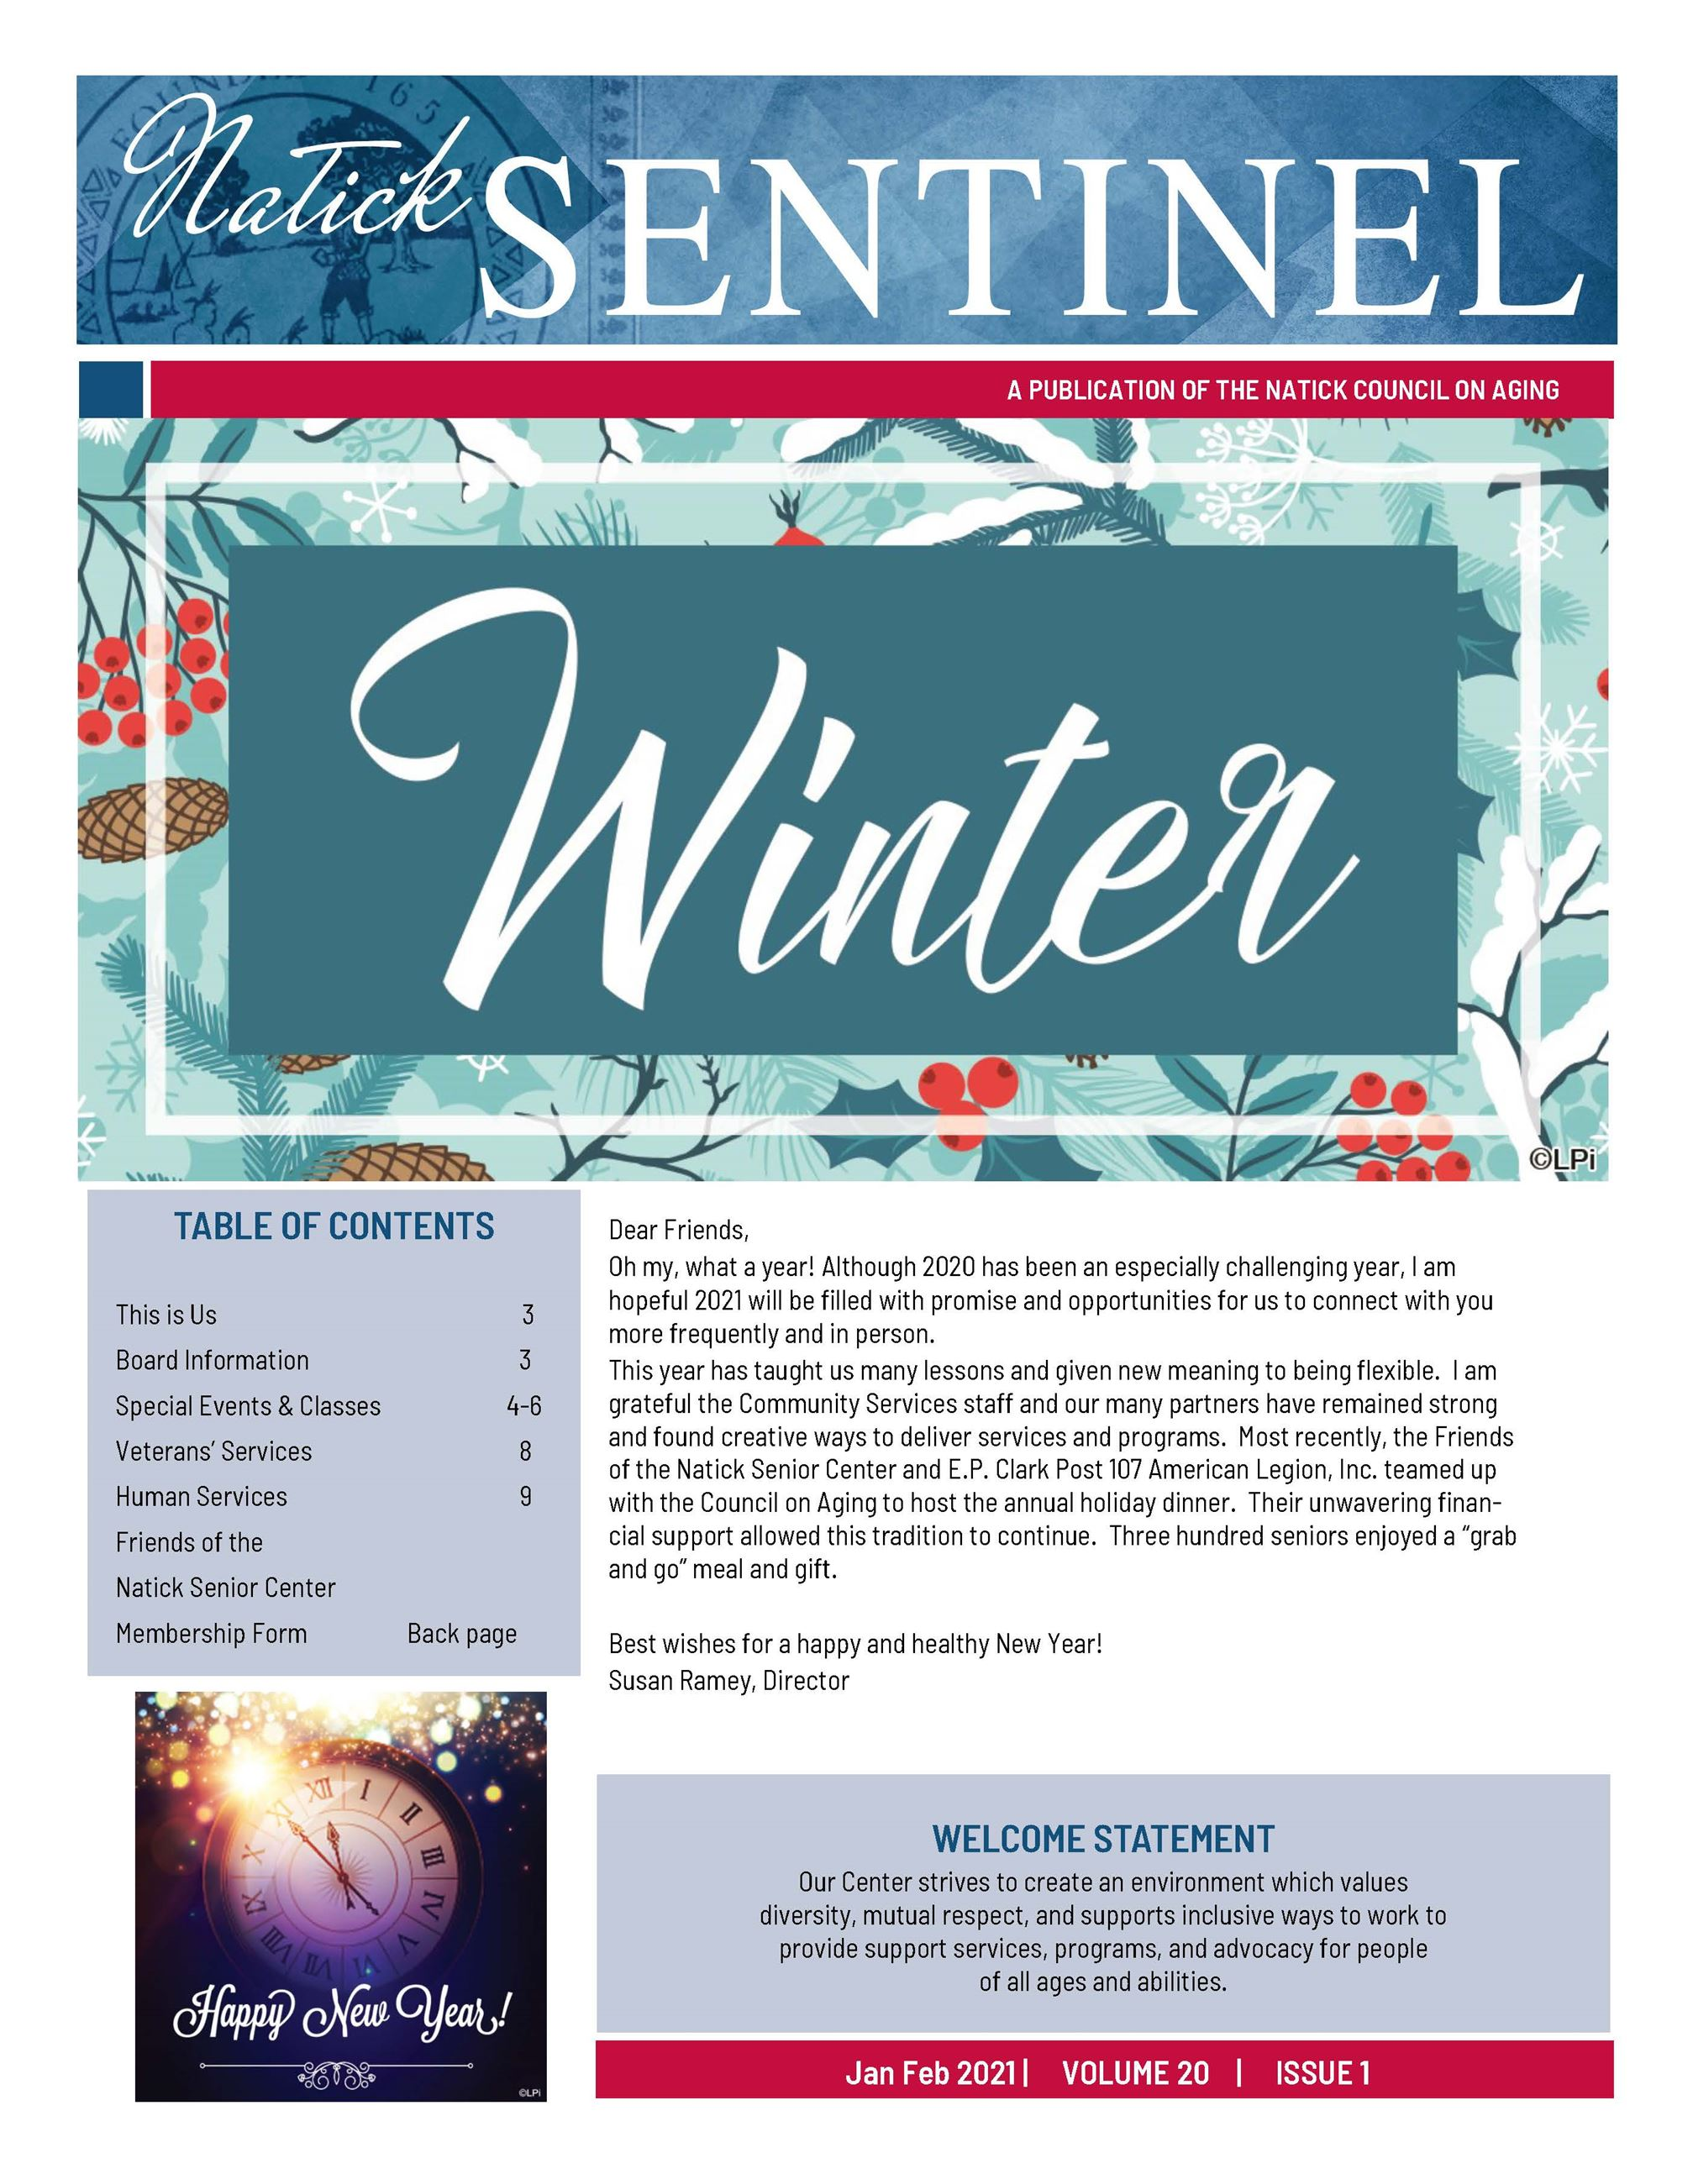 JanFebSentinel Natick_Page_01